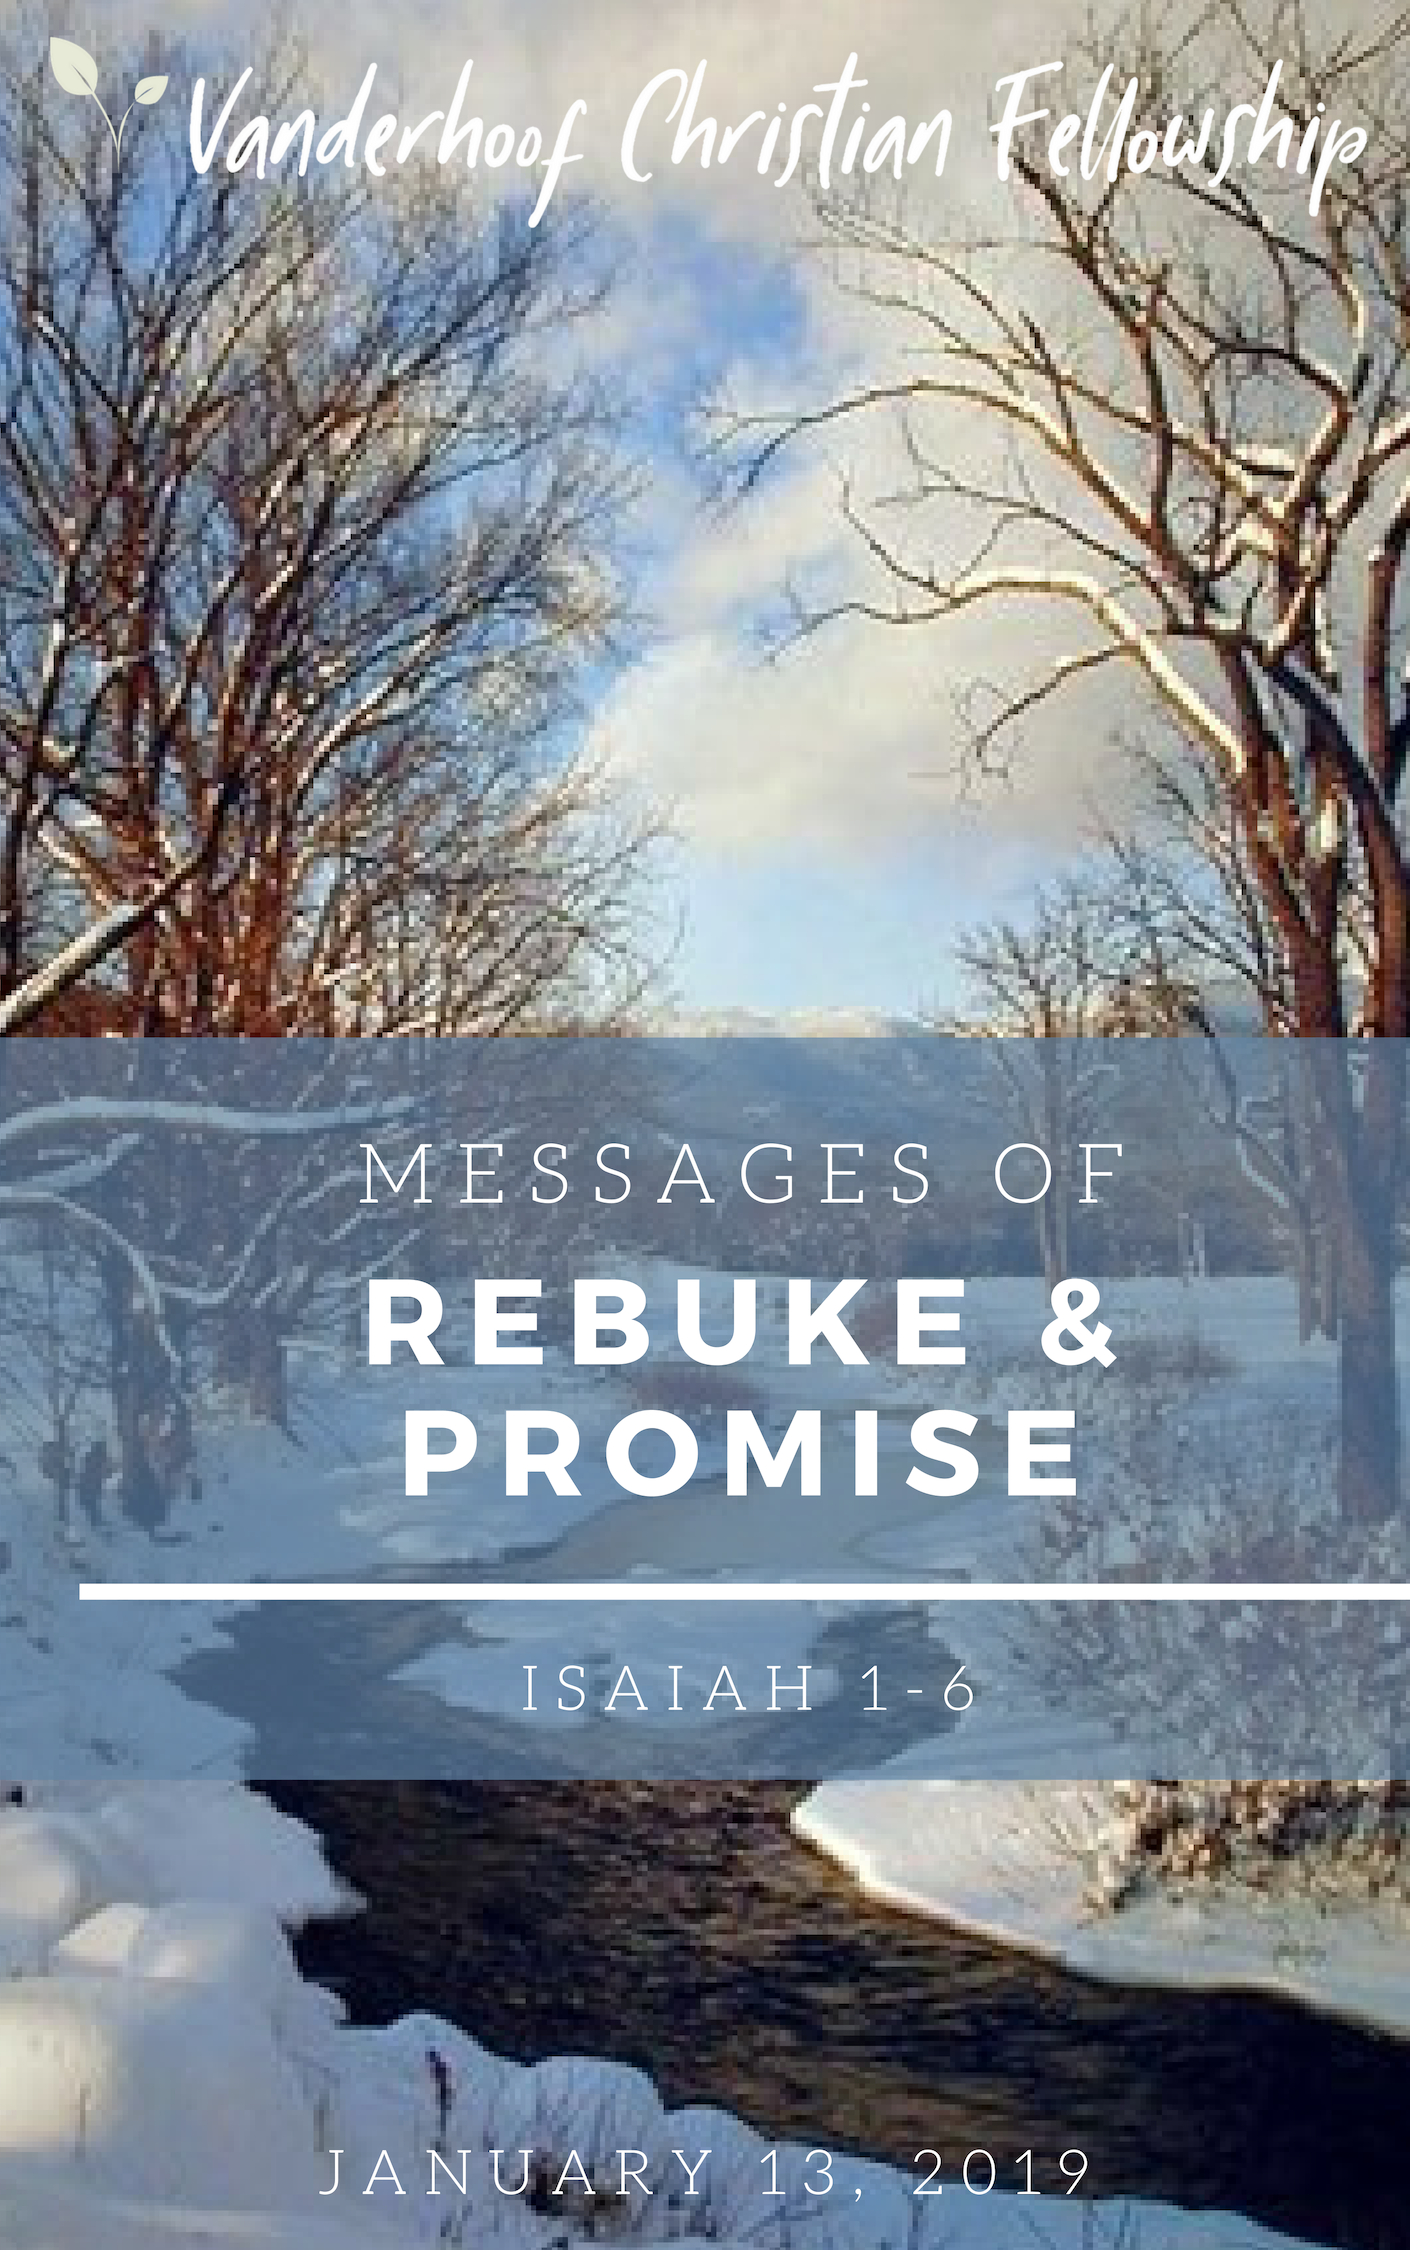 Messages of Rebuke & Promise